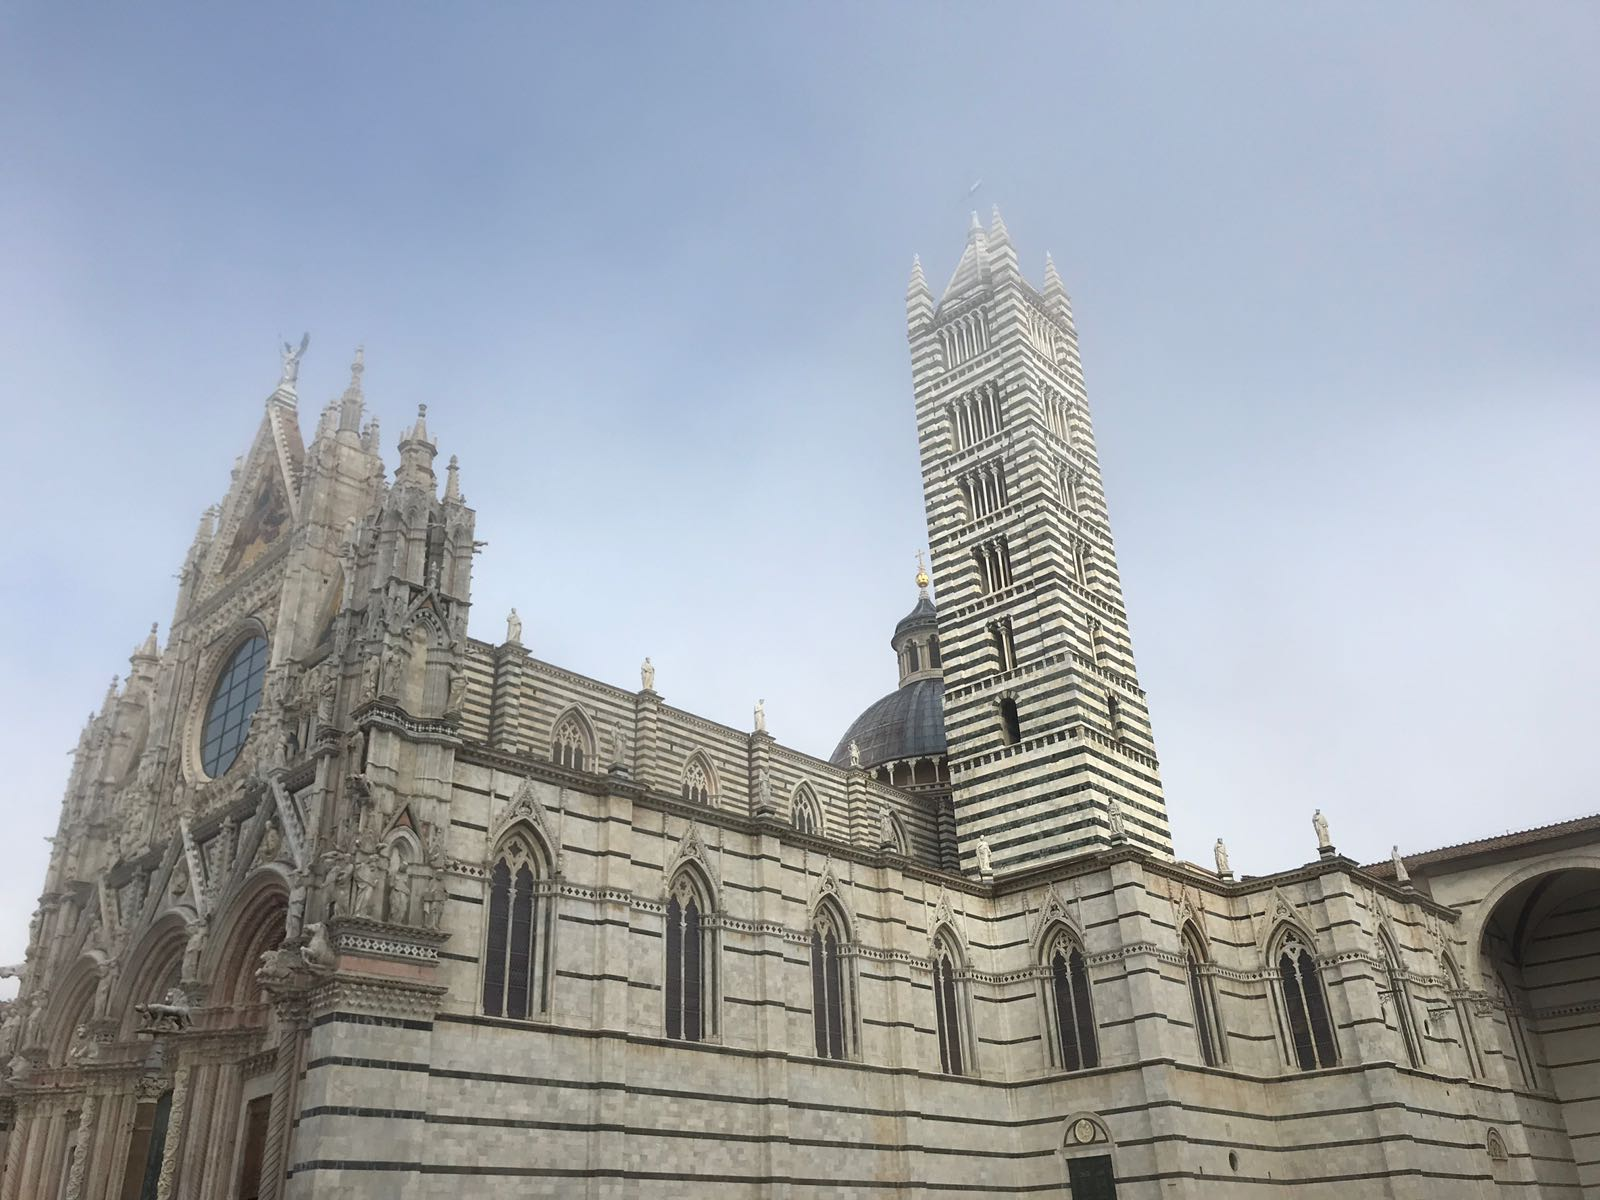 Siena Cathedral in the mist with the facade and tower fading into the background